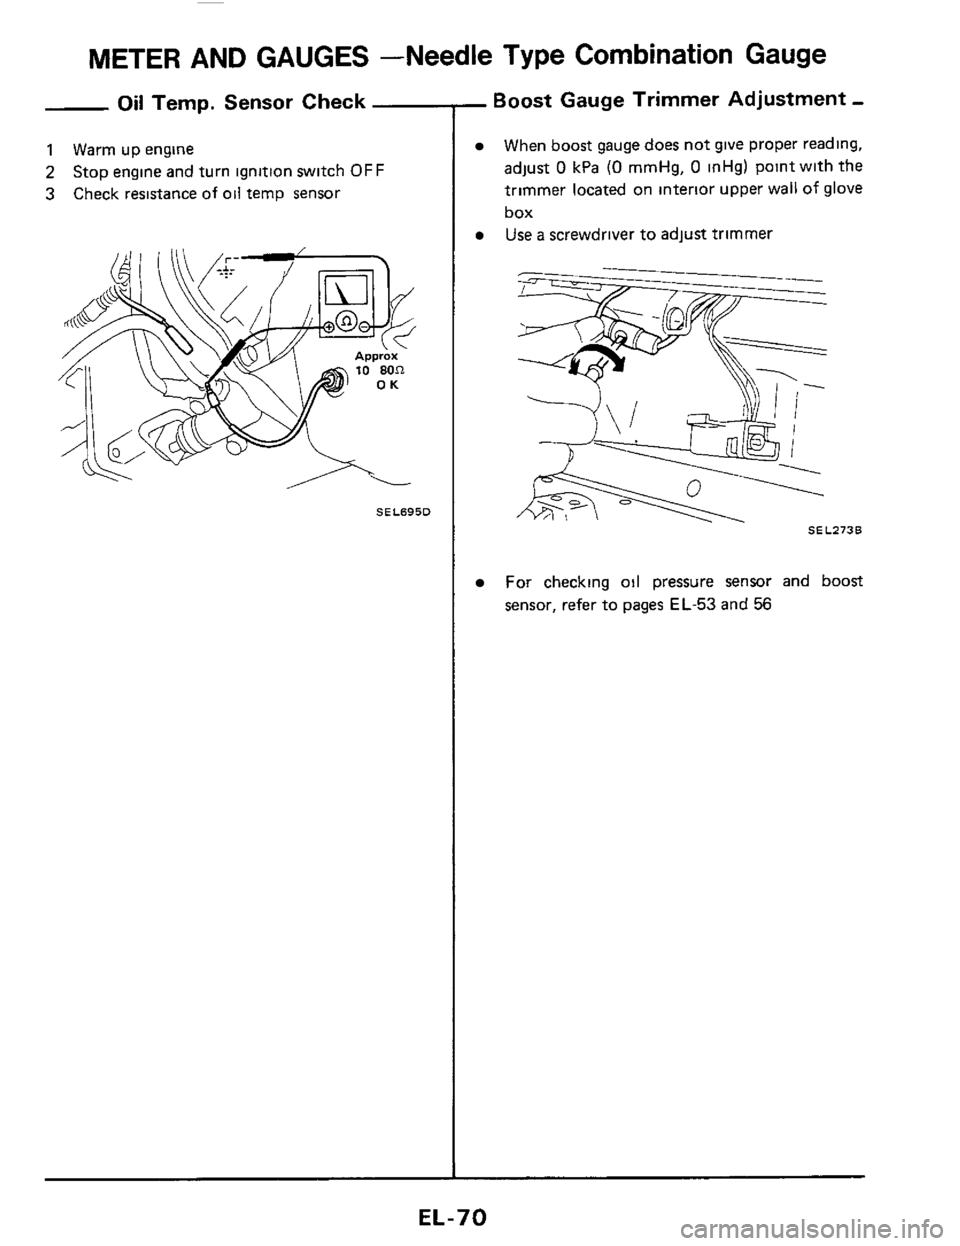 w960_567 69 oil type nissan 300zx 1984 z31 electrical system workshop manual  at edmiracle.co